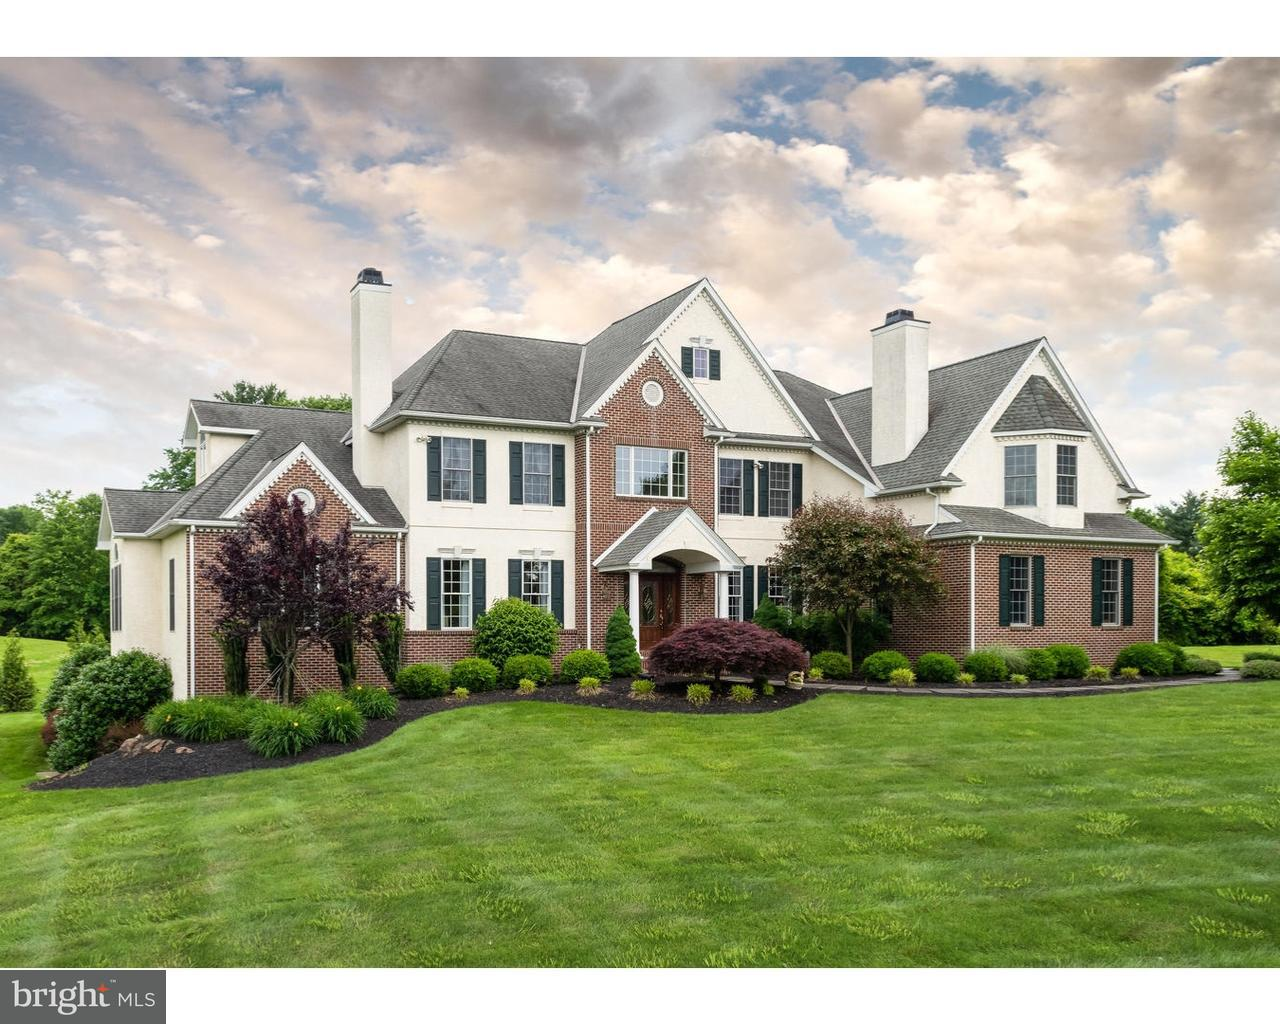 46 THORNBIRD WAY, NEWTOWN SQUARE - Listed at $1,050,000, NEWTOWN SQUARE